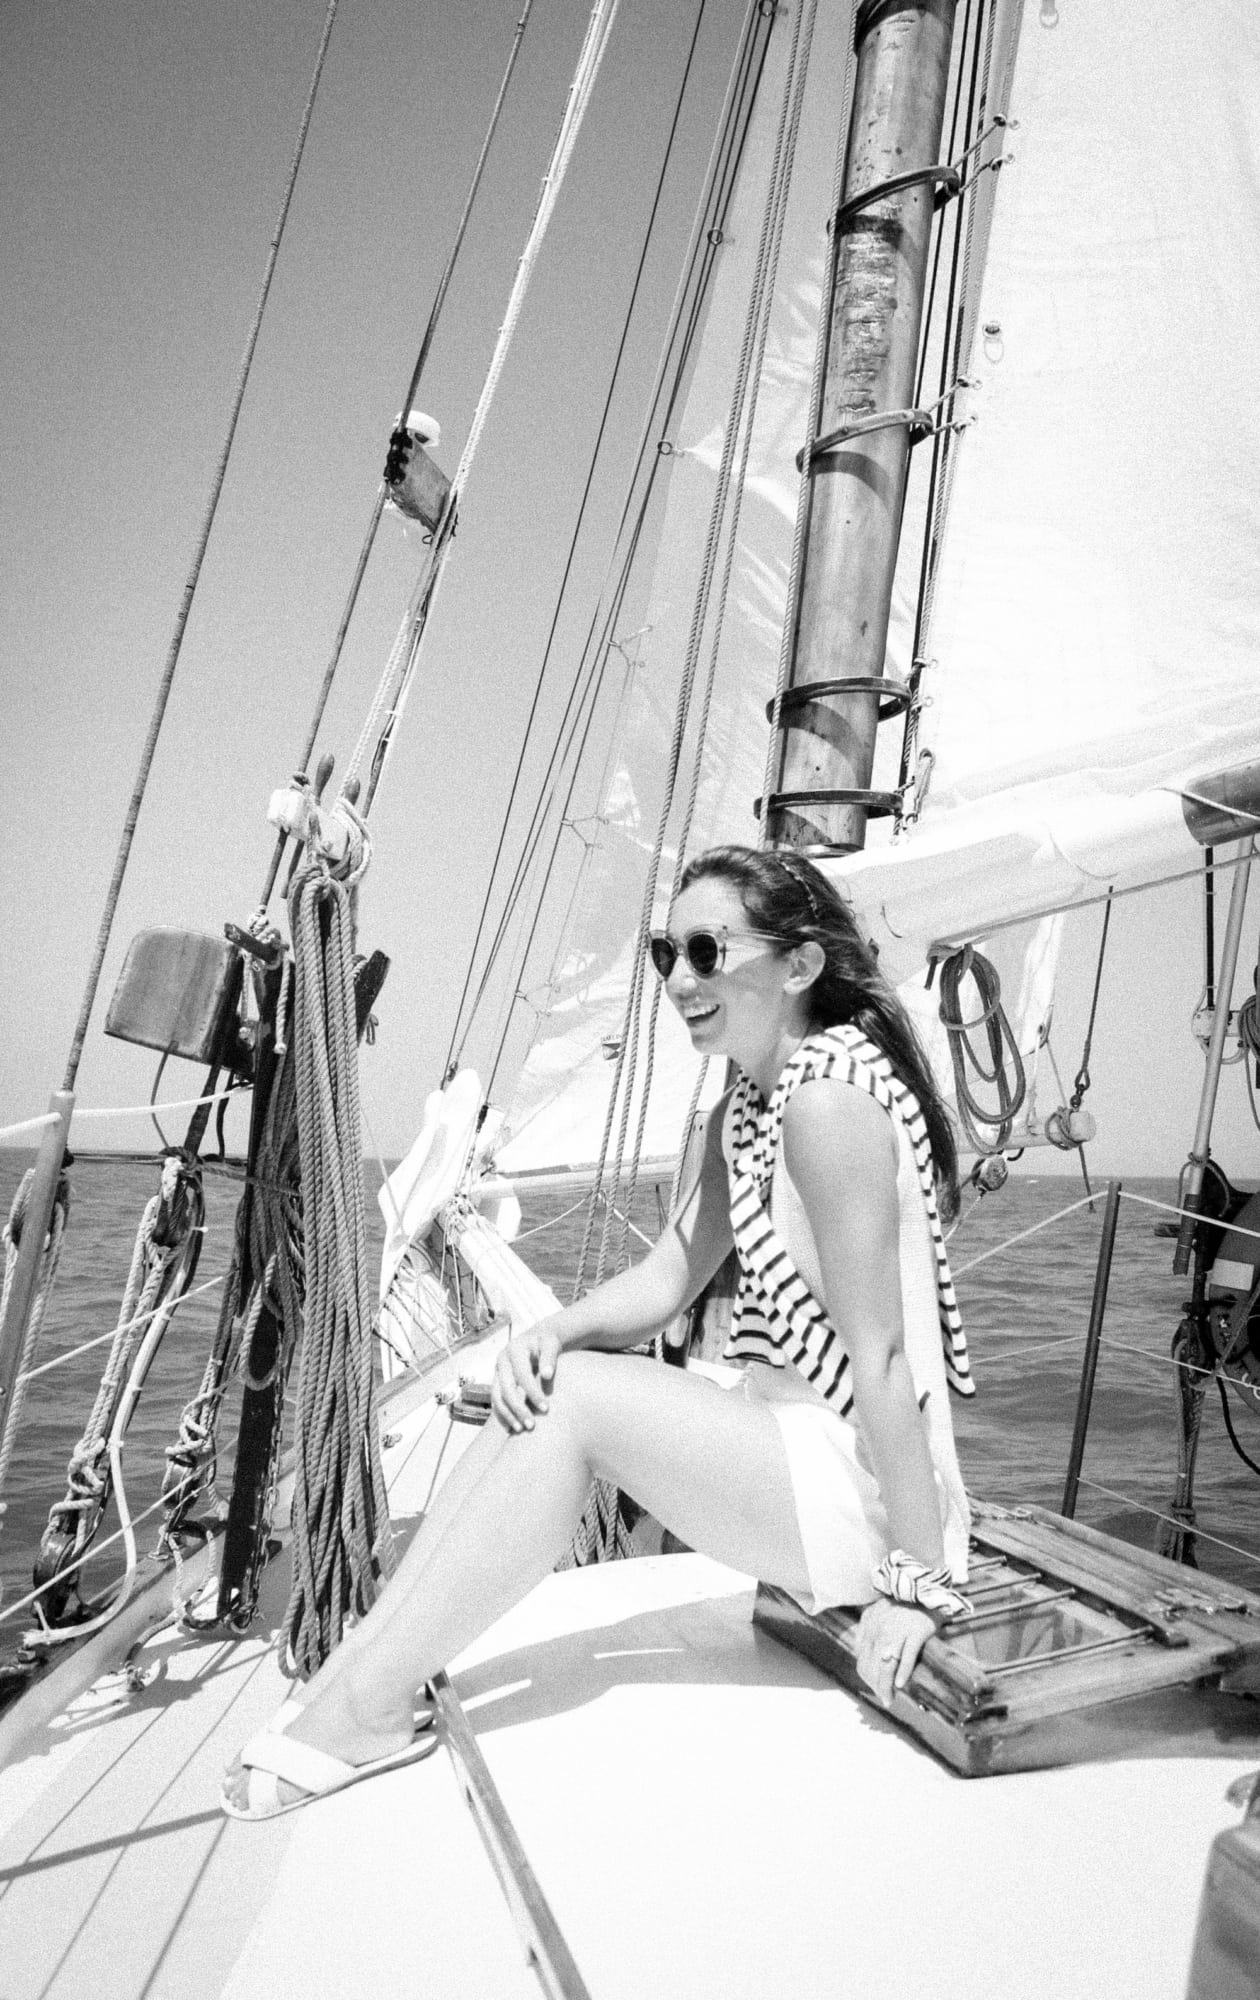 Sailing in Nantucket